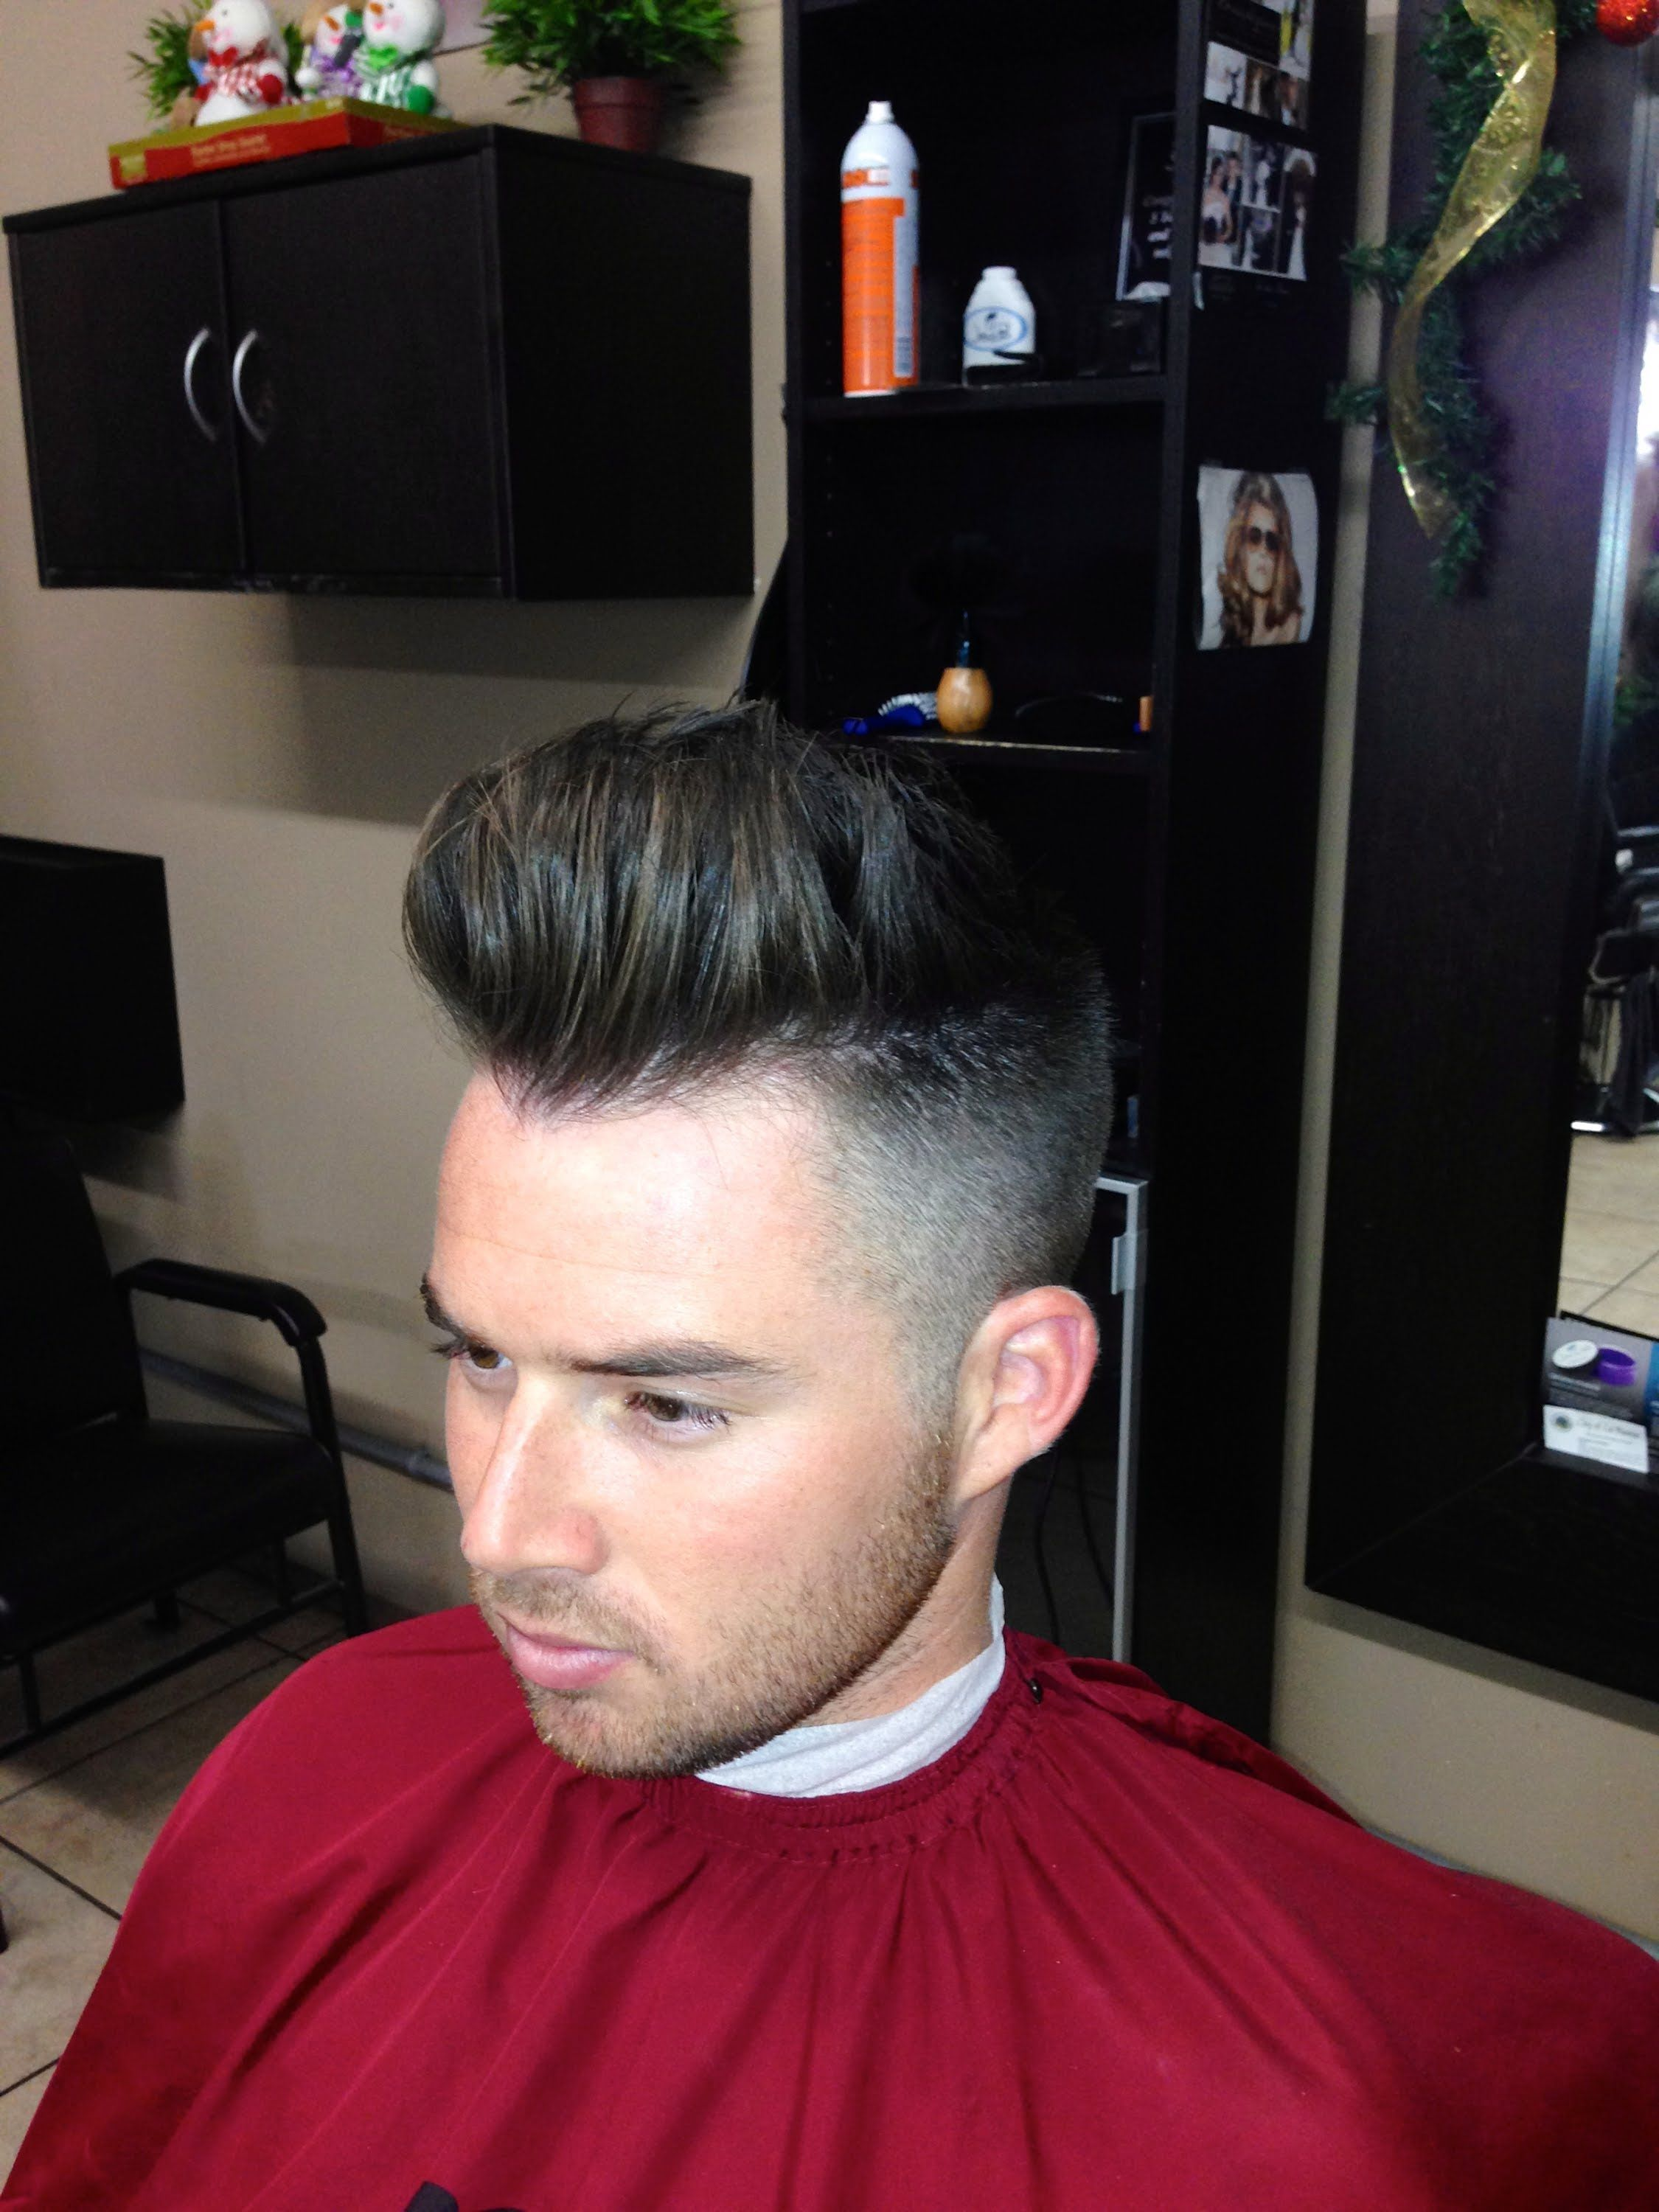 Mens short undercut haircut how to cut a modern pompadour haircut  step by step tutorial went